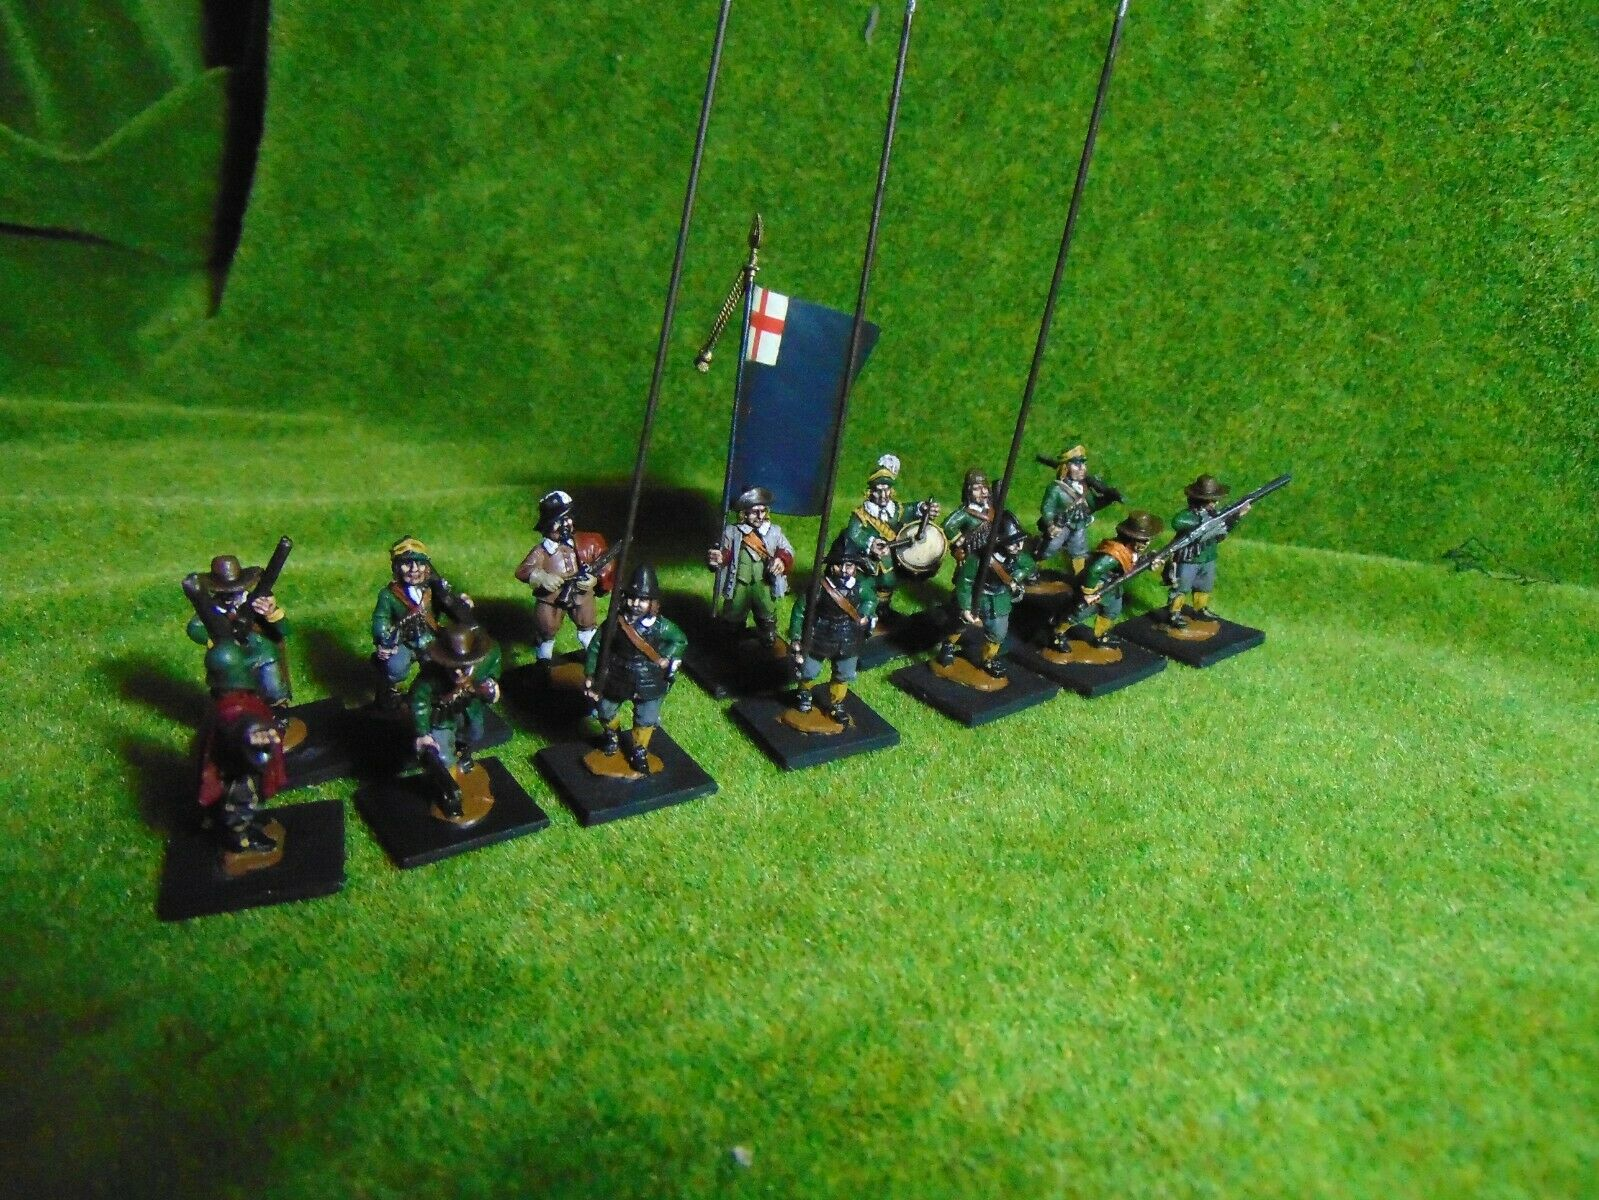 28mm Foundry Perry ECW TYW TYW TYW Regiment painted by Malplaquet Miniatures 14 figures f40985